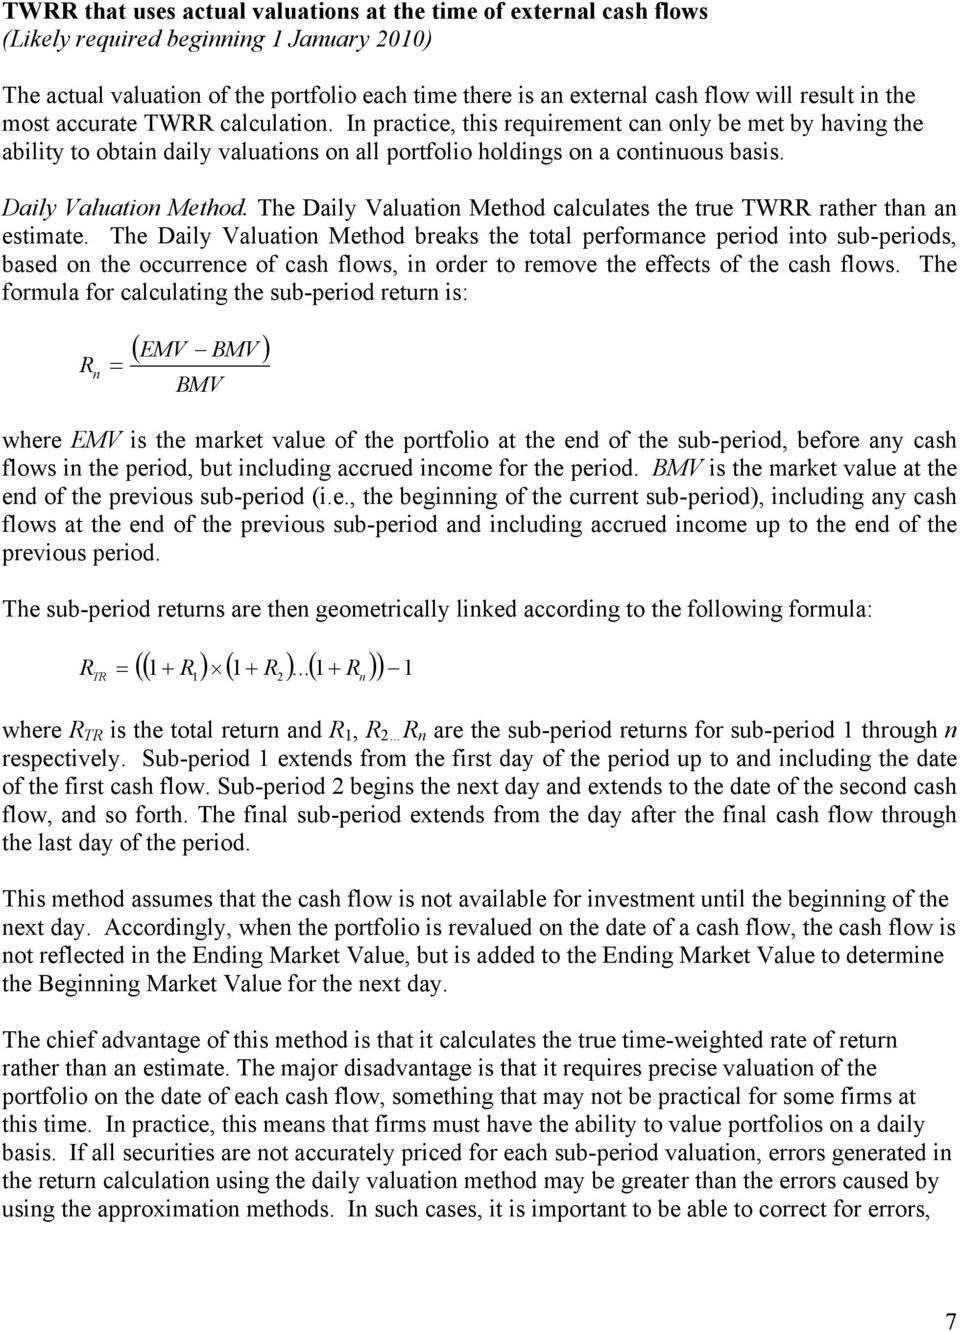 The Daily Valuatio Method calculates the true T rather tha a estimate.